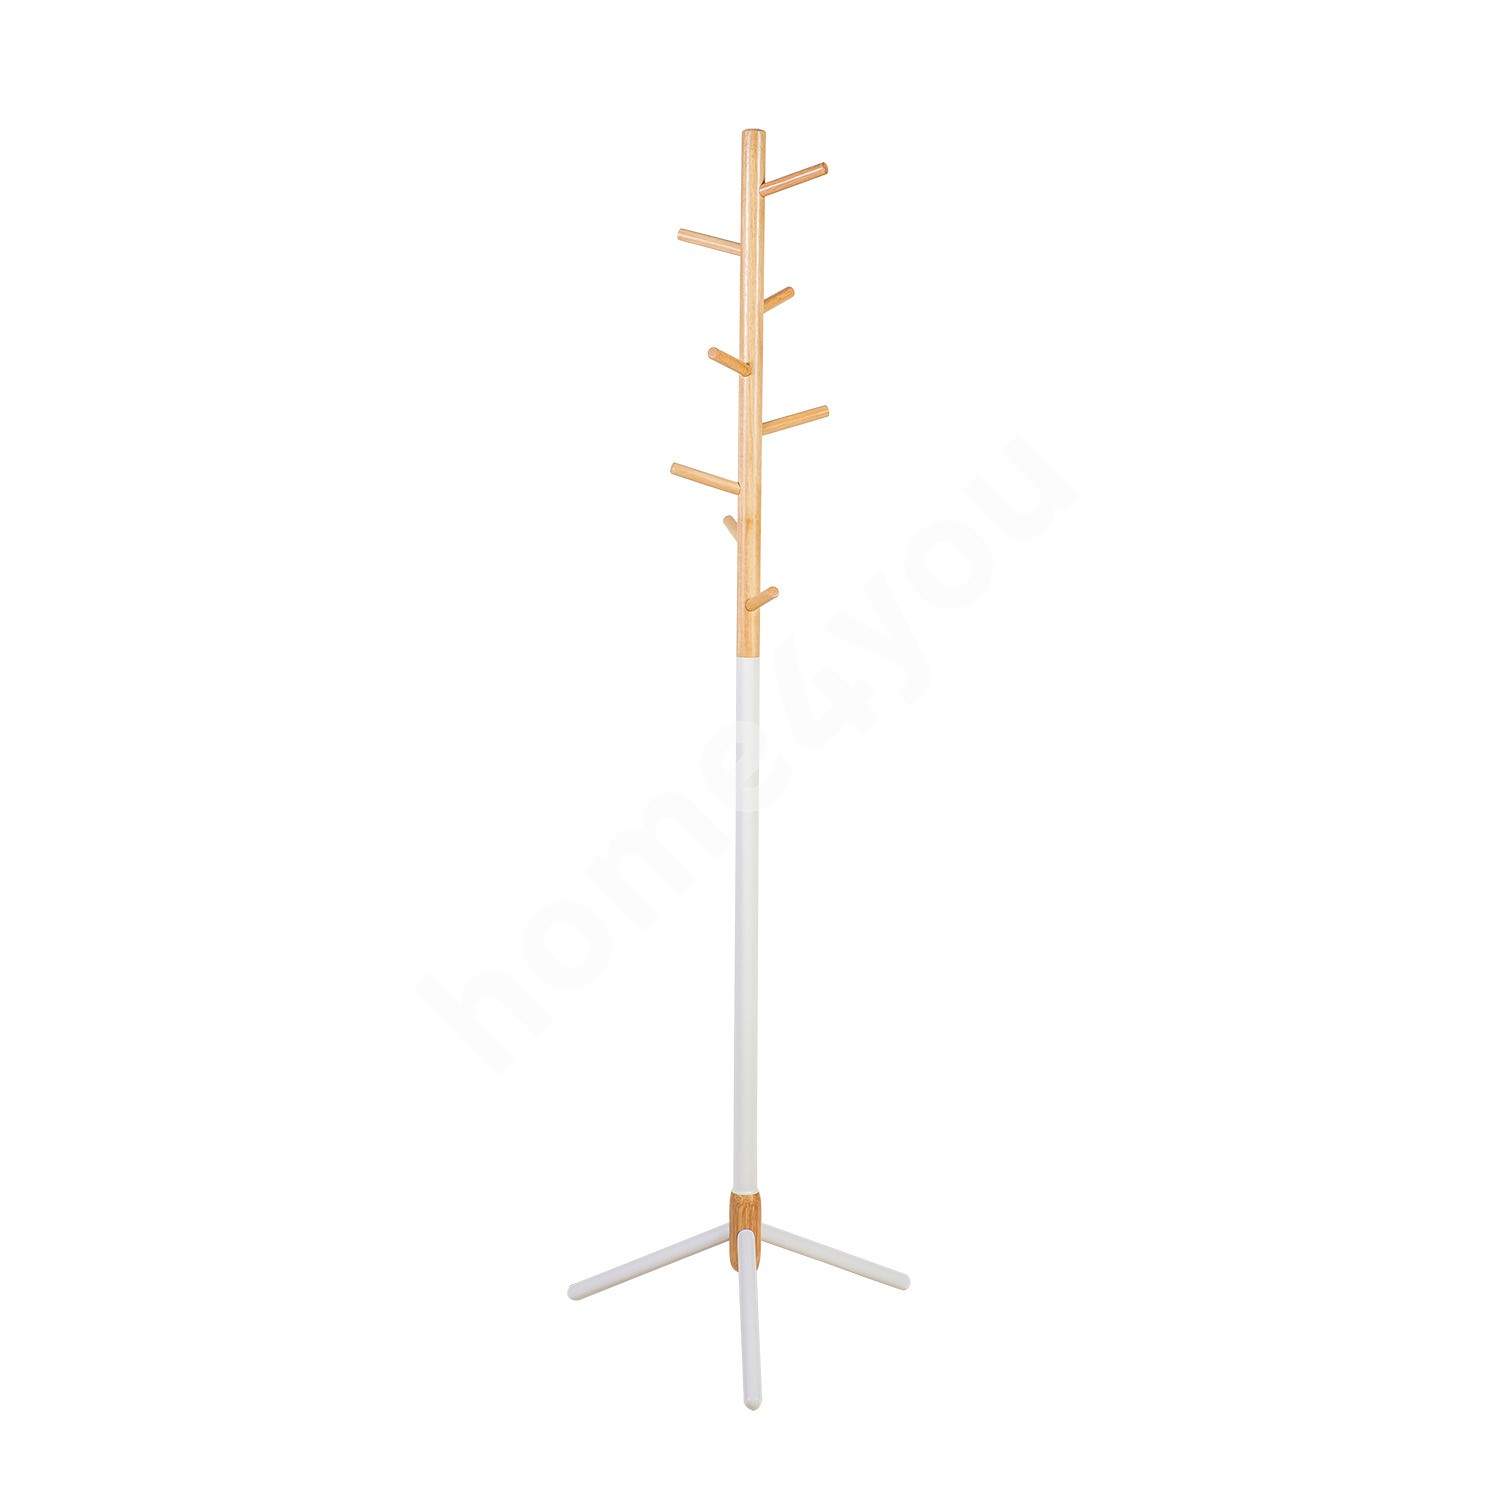 Coat rack FOREST 44x49xH166cm, material: steel / wood, color: white / natural